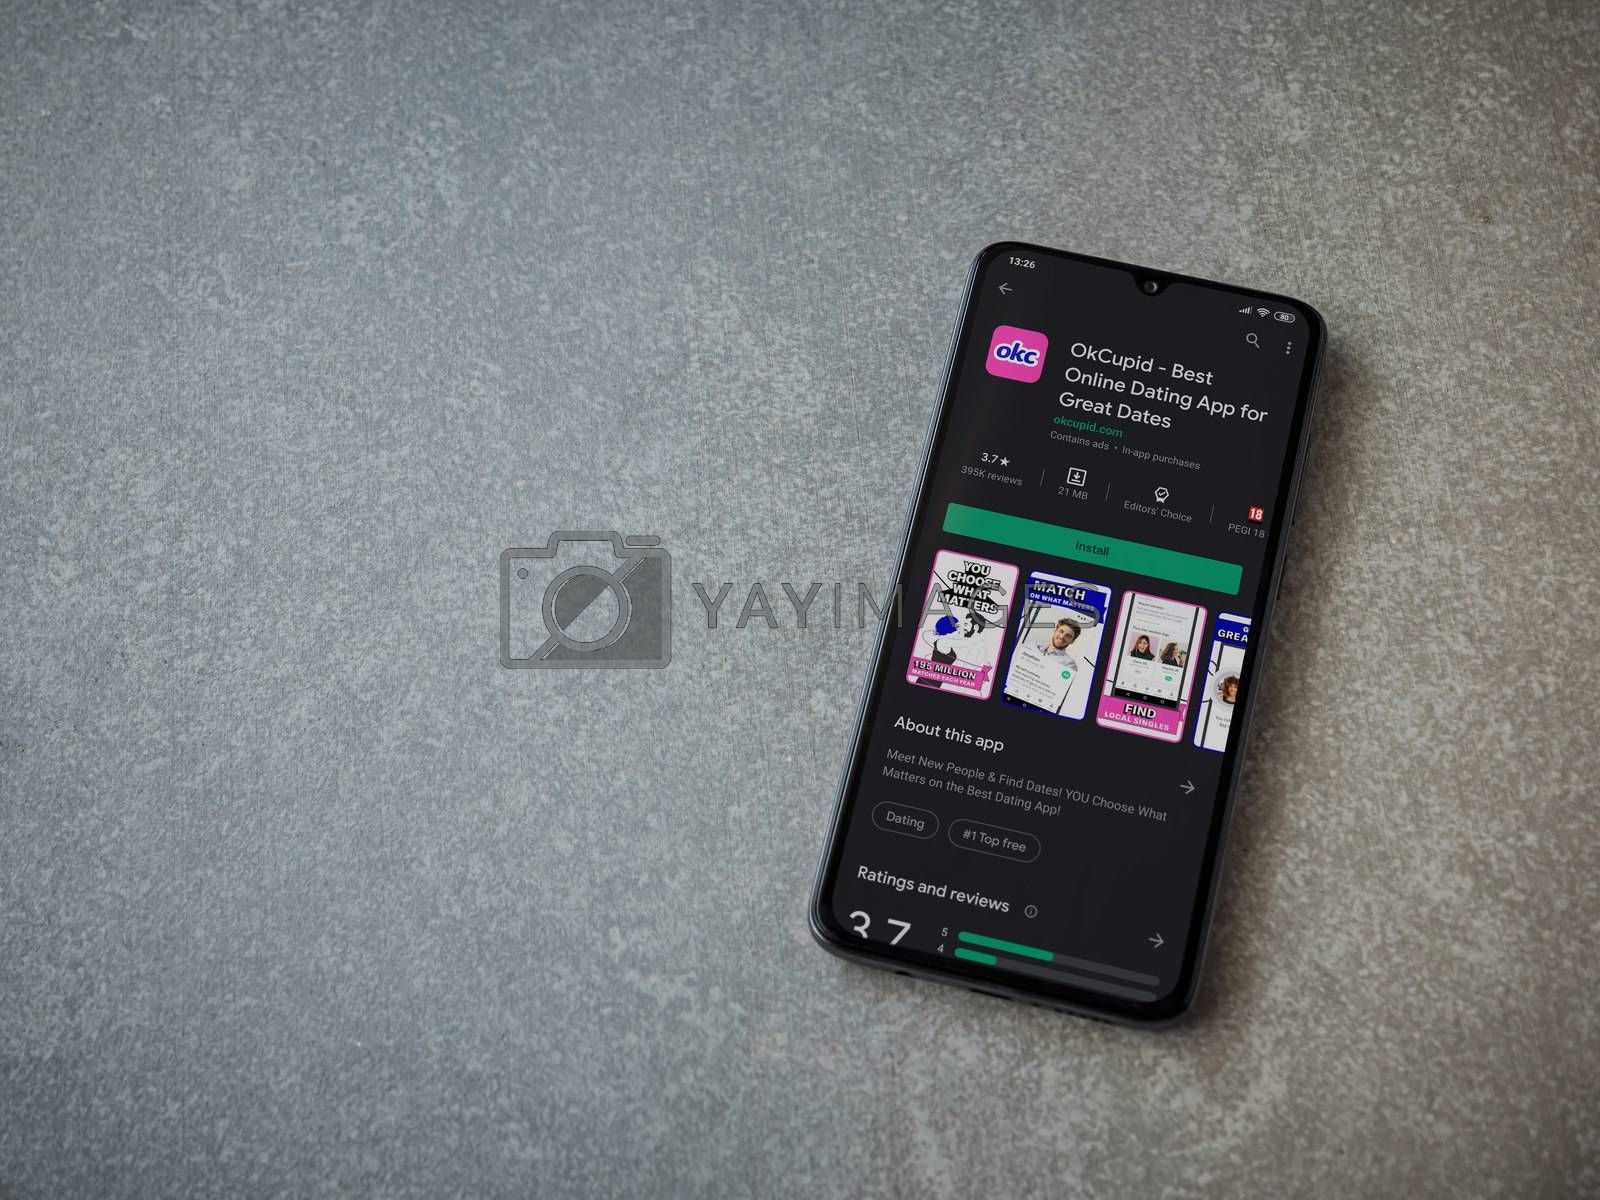 OkCupid app play store page on the display of a black mobile sma by wavemovies